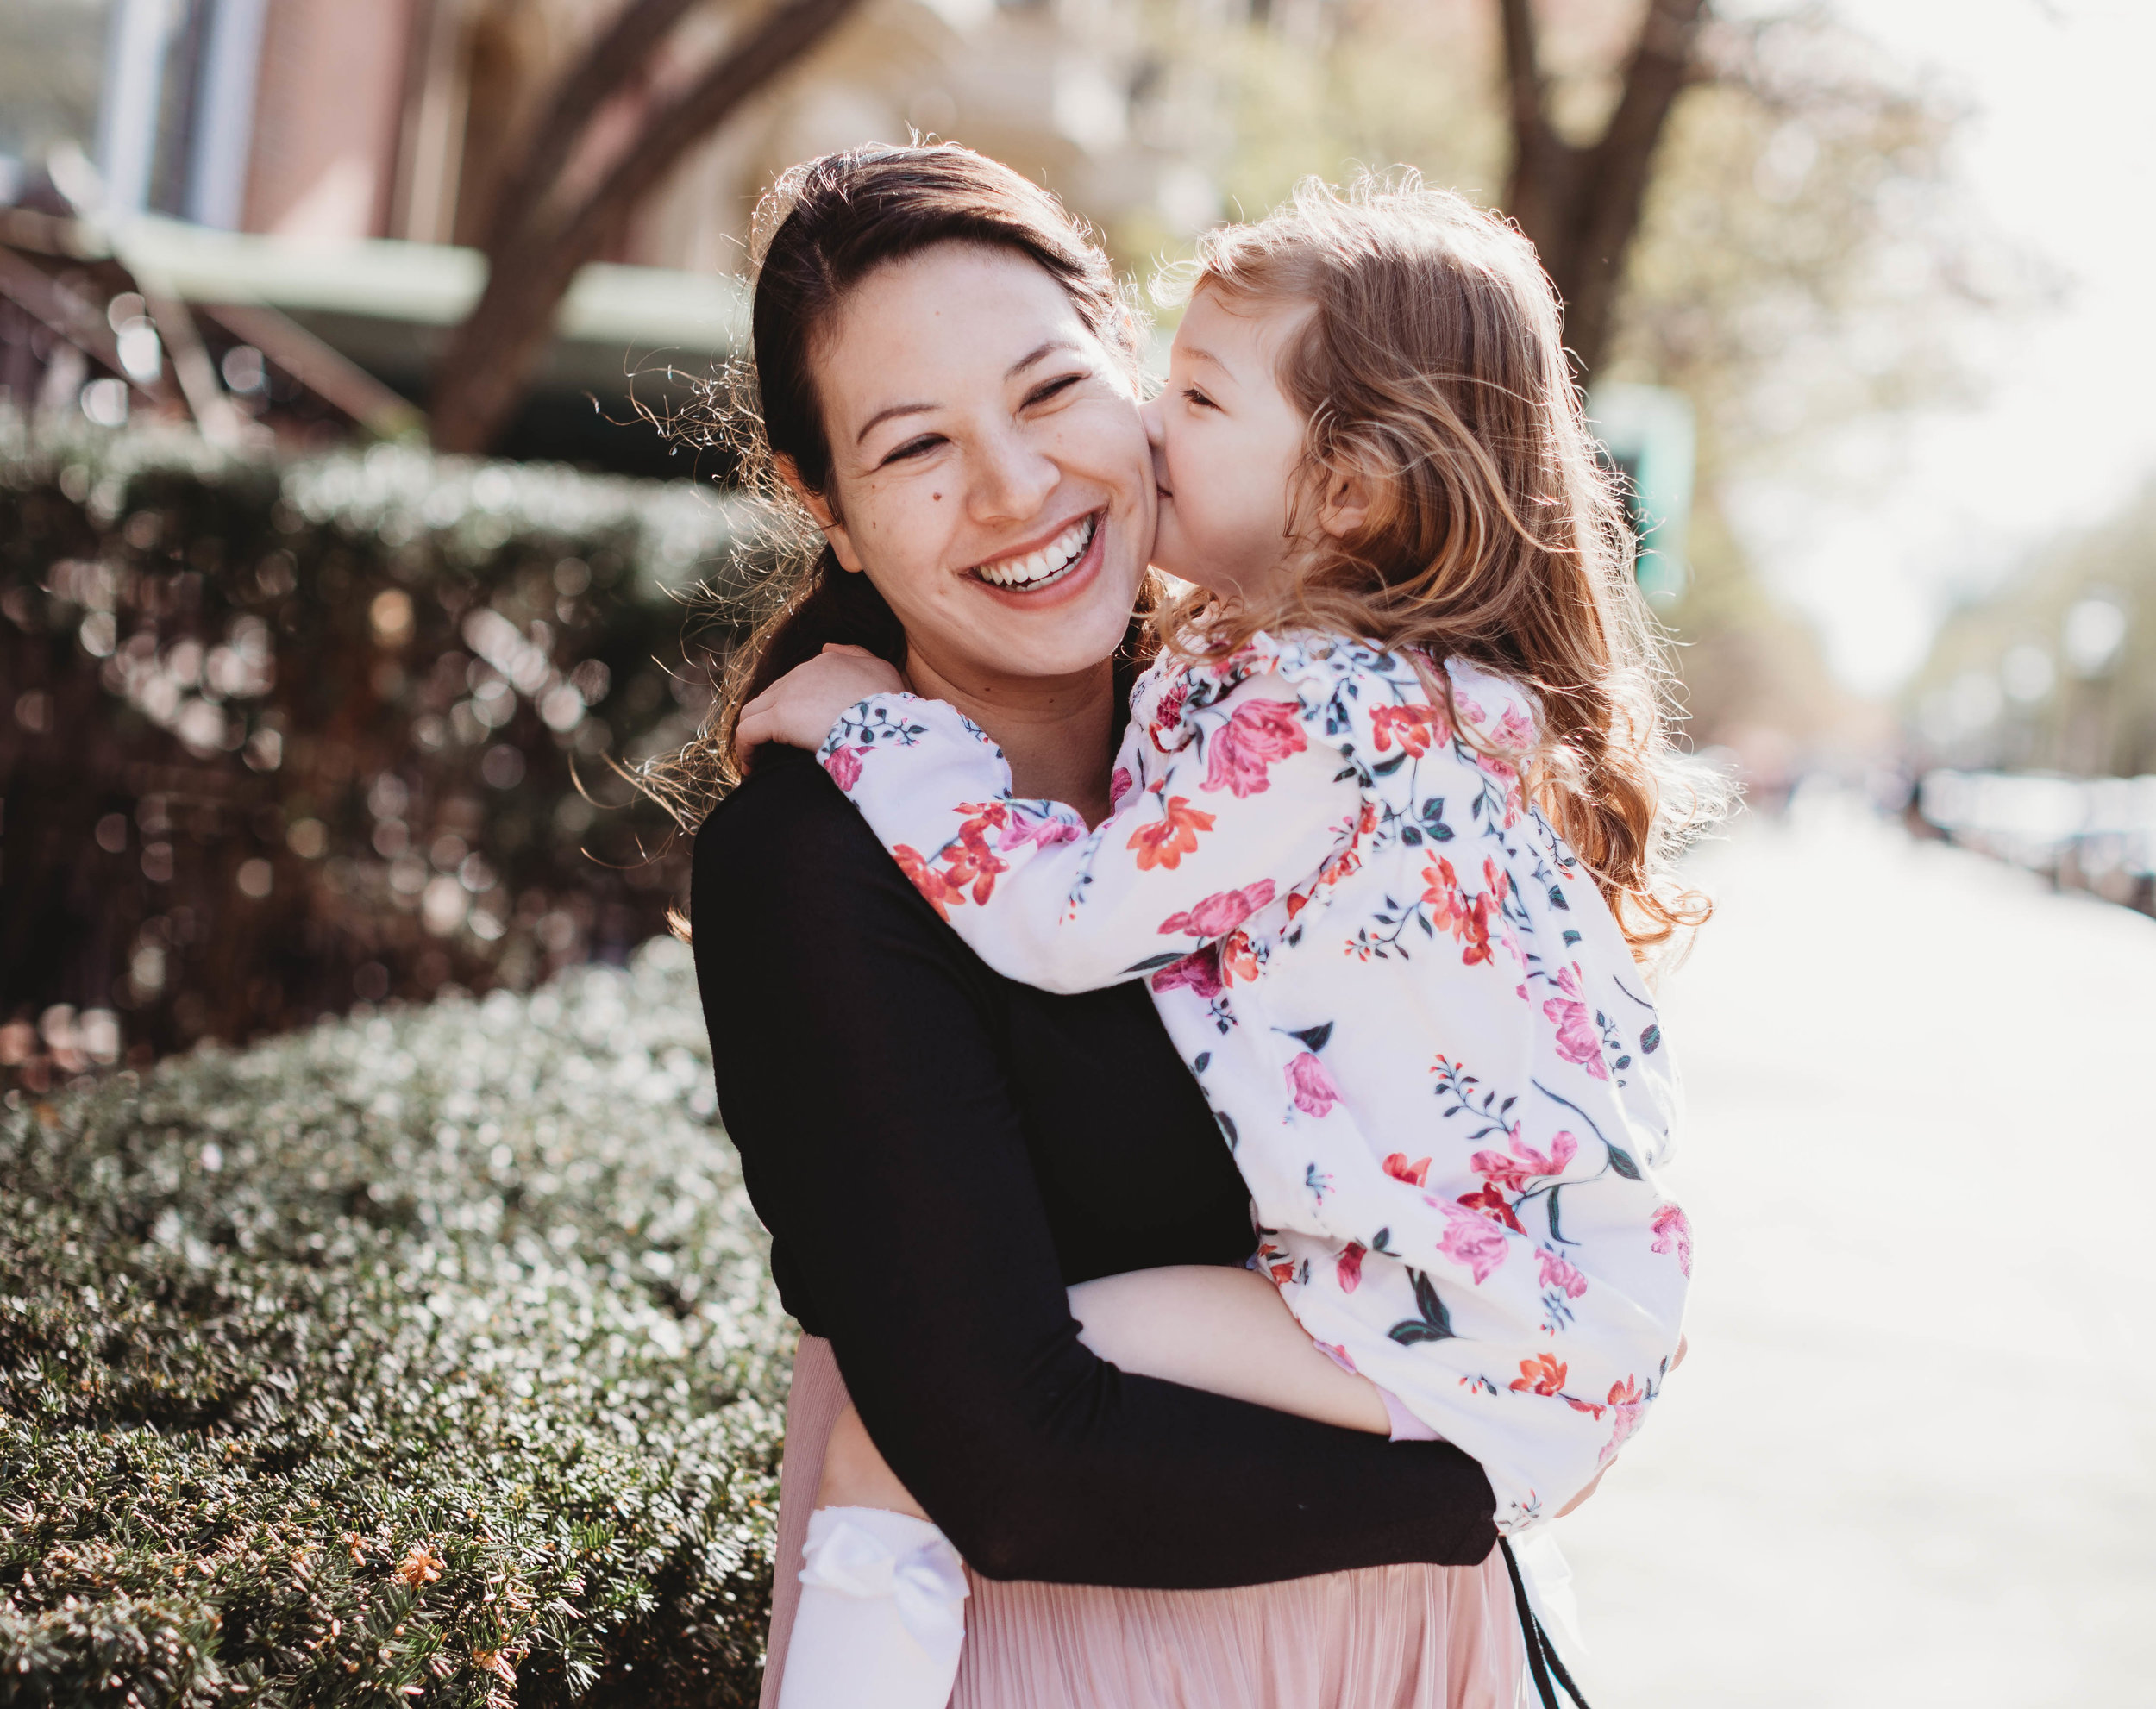 Mom and toddler daughter. Boston maternity photographer. Springtime family photos.